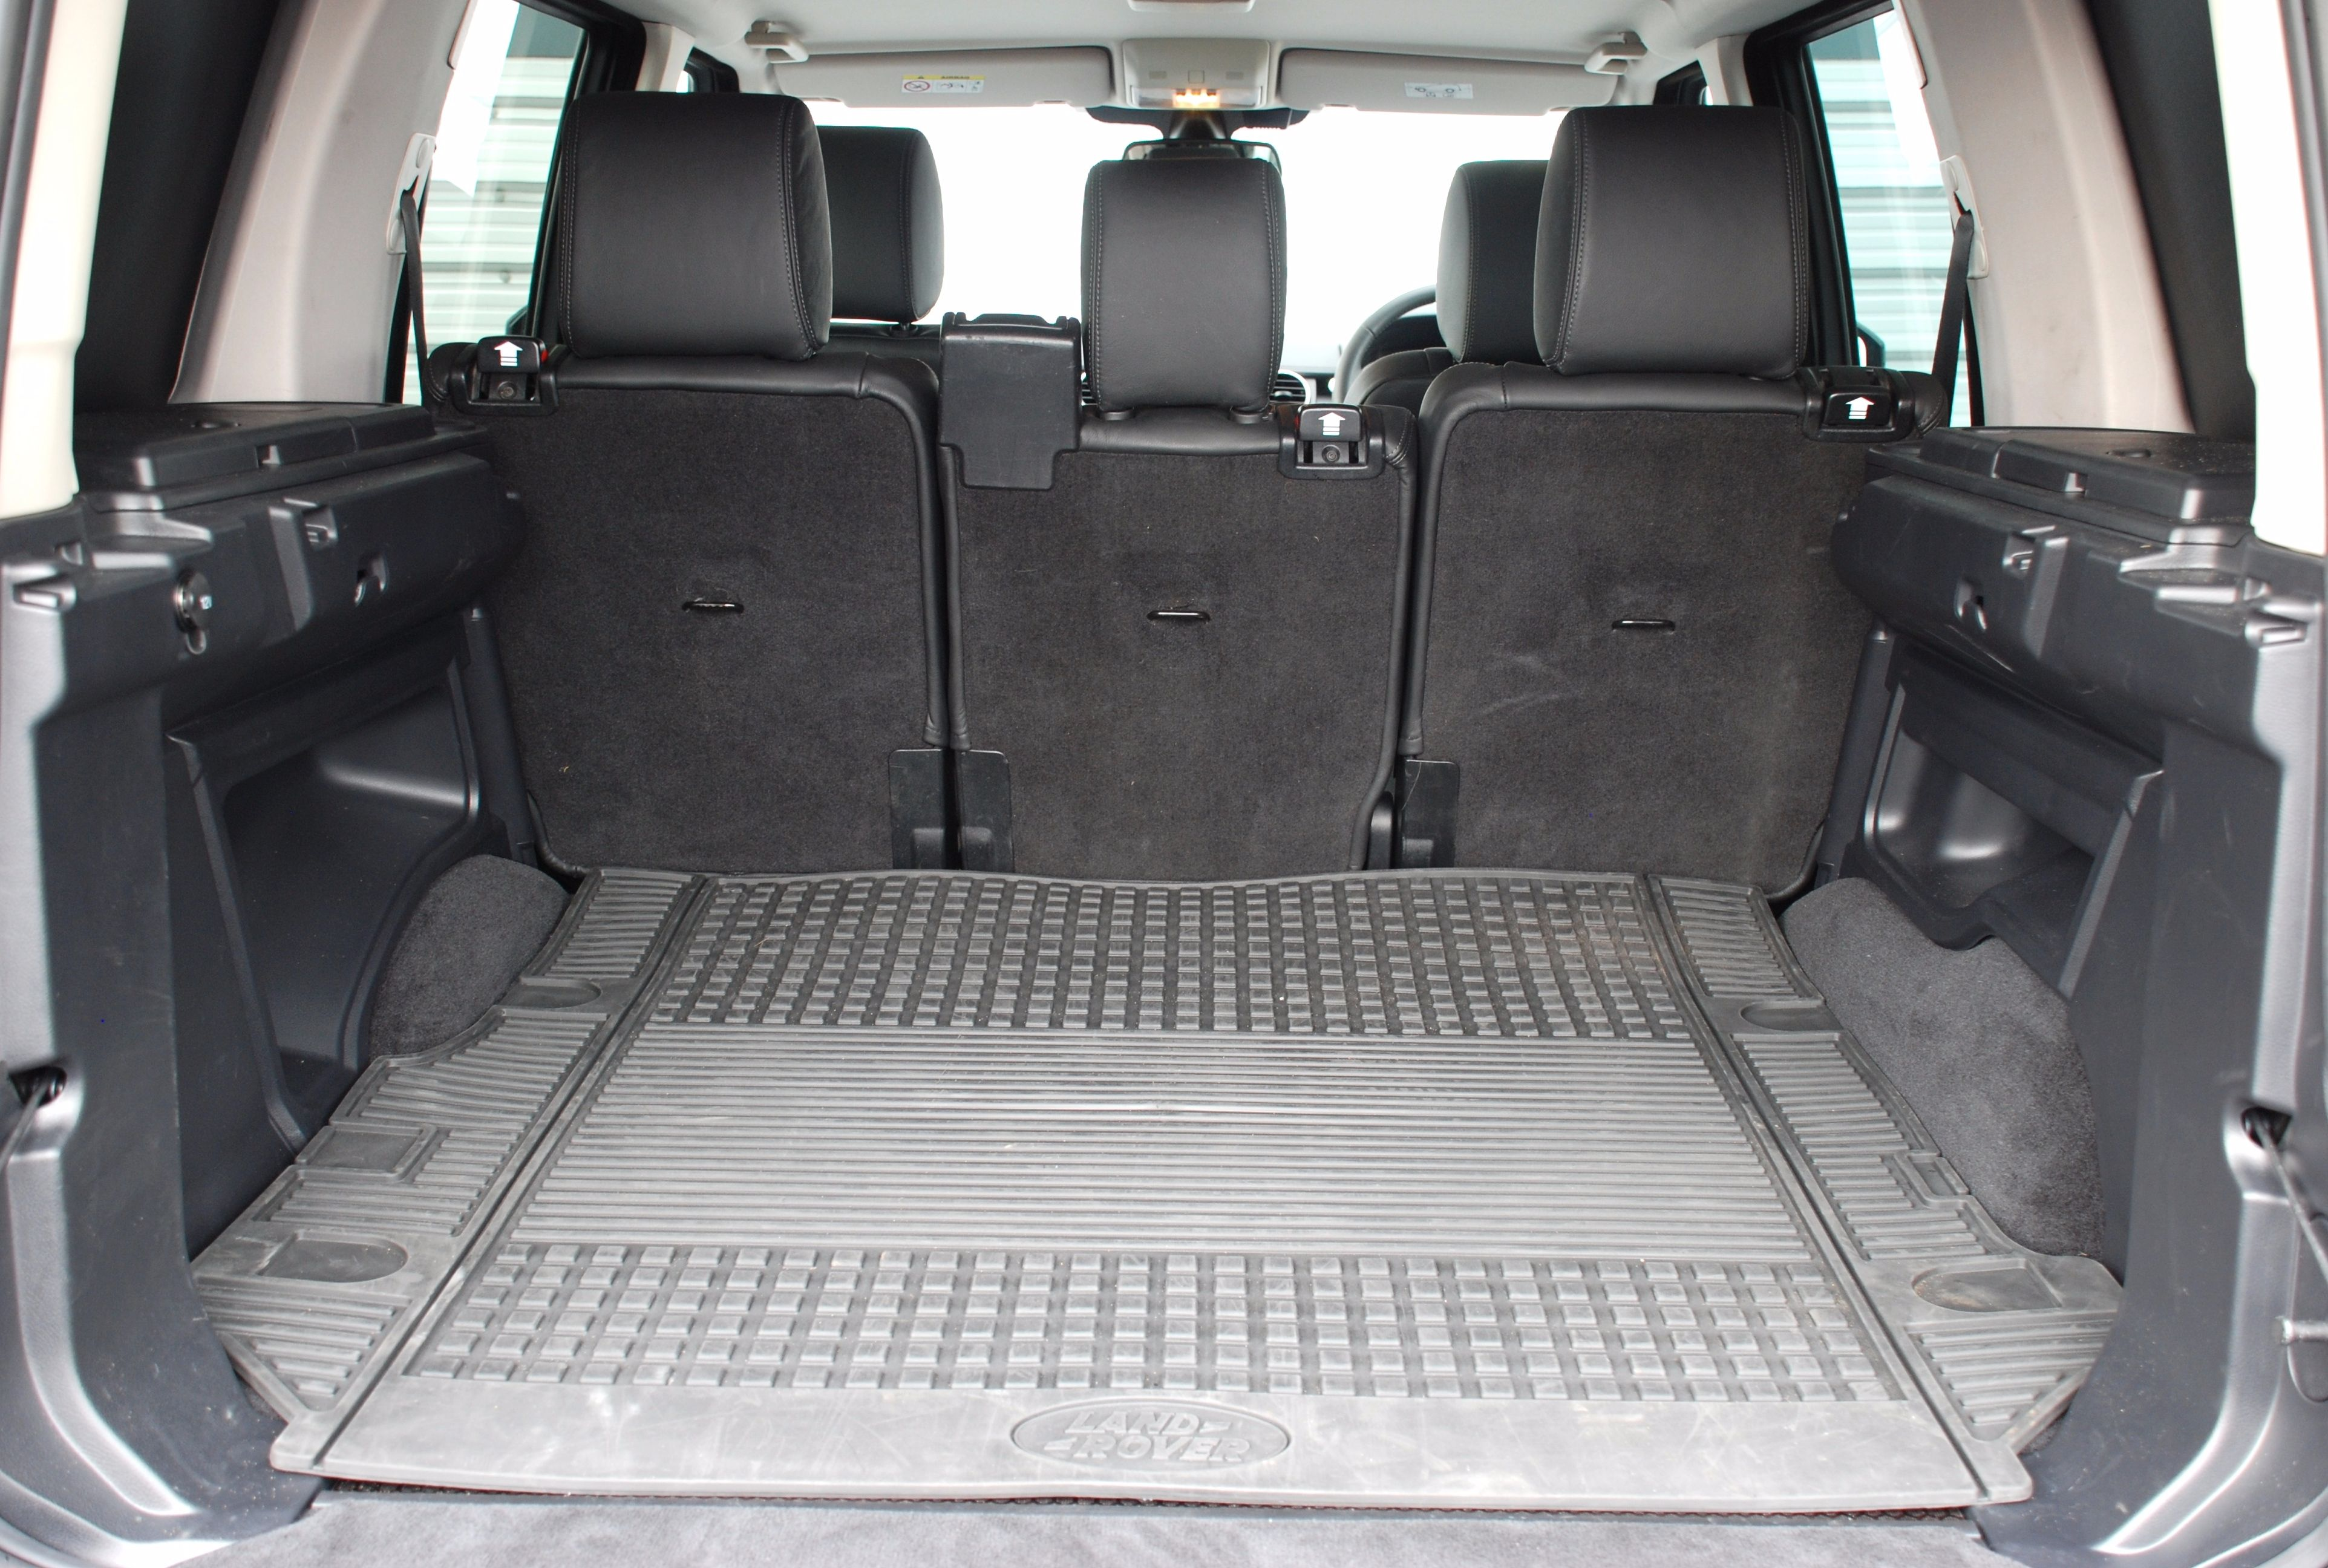 Land Rover Discovery Commercial Seat Conversion - latest delighted customer!